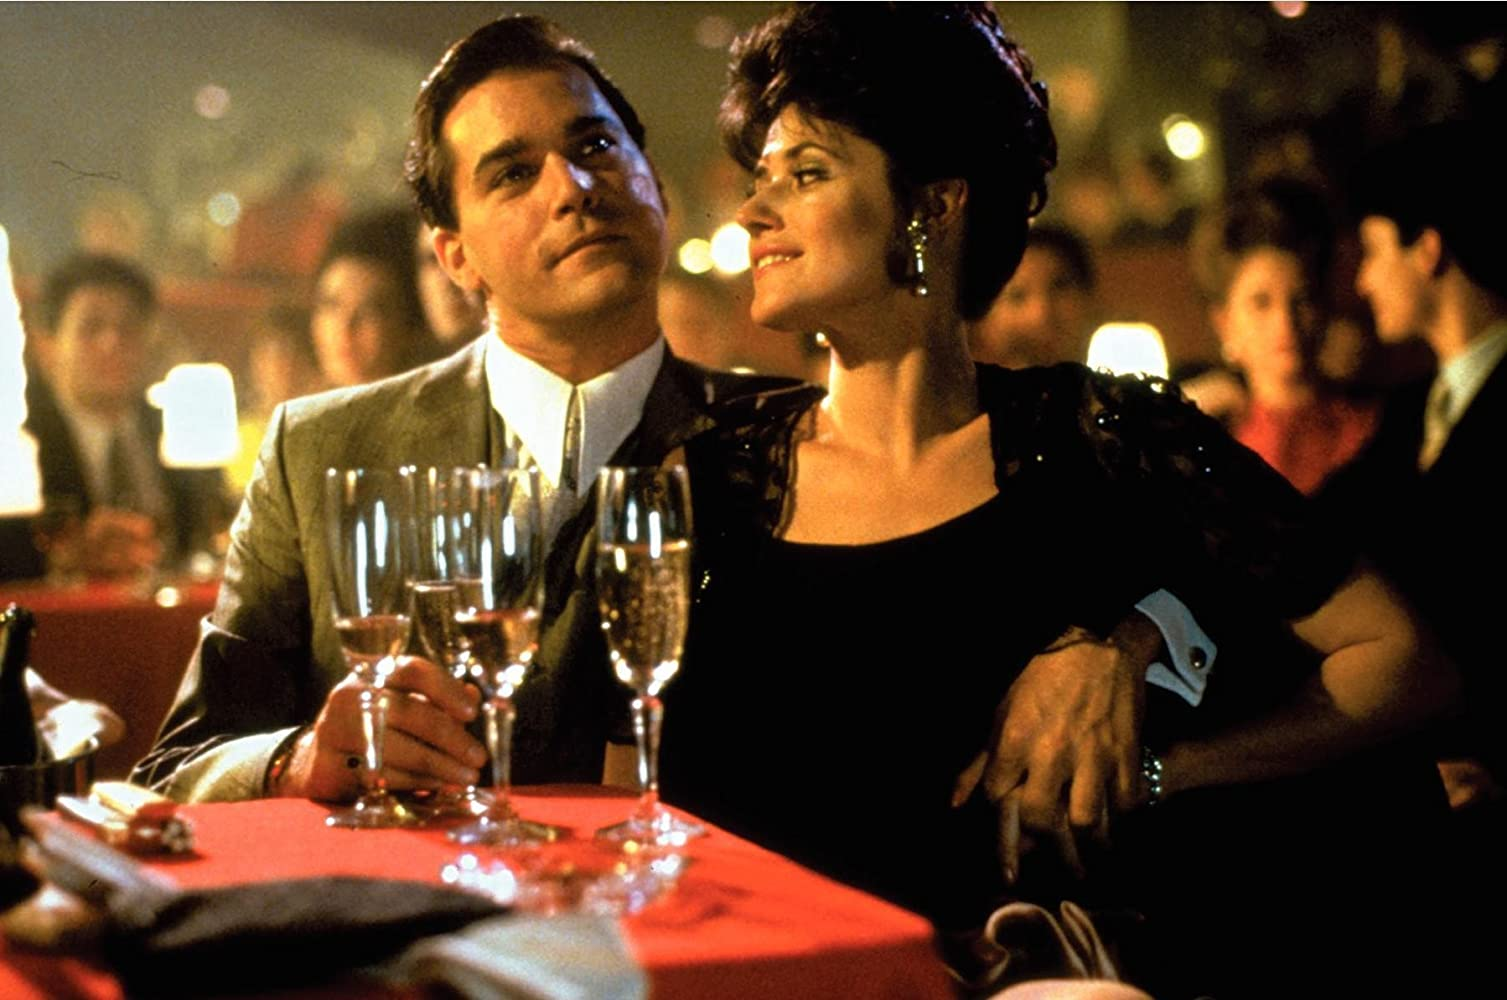 Ray Liotta and Lorraine Bracco in Goodfellas (1990). Henry and Karen Hill are at a dimly lit bar, sitting at a small table with four glasses of champagne sitting in front of them. Karen sits closely to her husband, who has his arm wrapped around her waist and clenches her hand, either protective or possessive. Henry, in a grey suit, is watching off-camera but Karen looks at him, her short dark hair is in a bouffant style and she wears glamorous makeup and gold earrings as well as a fitted black dress.